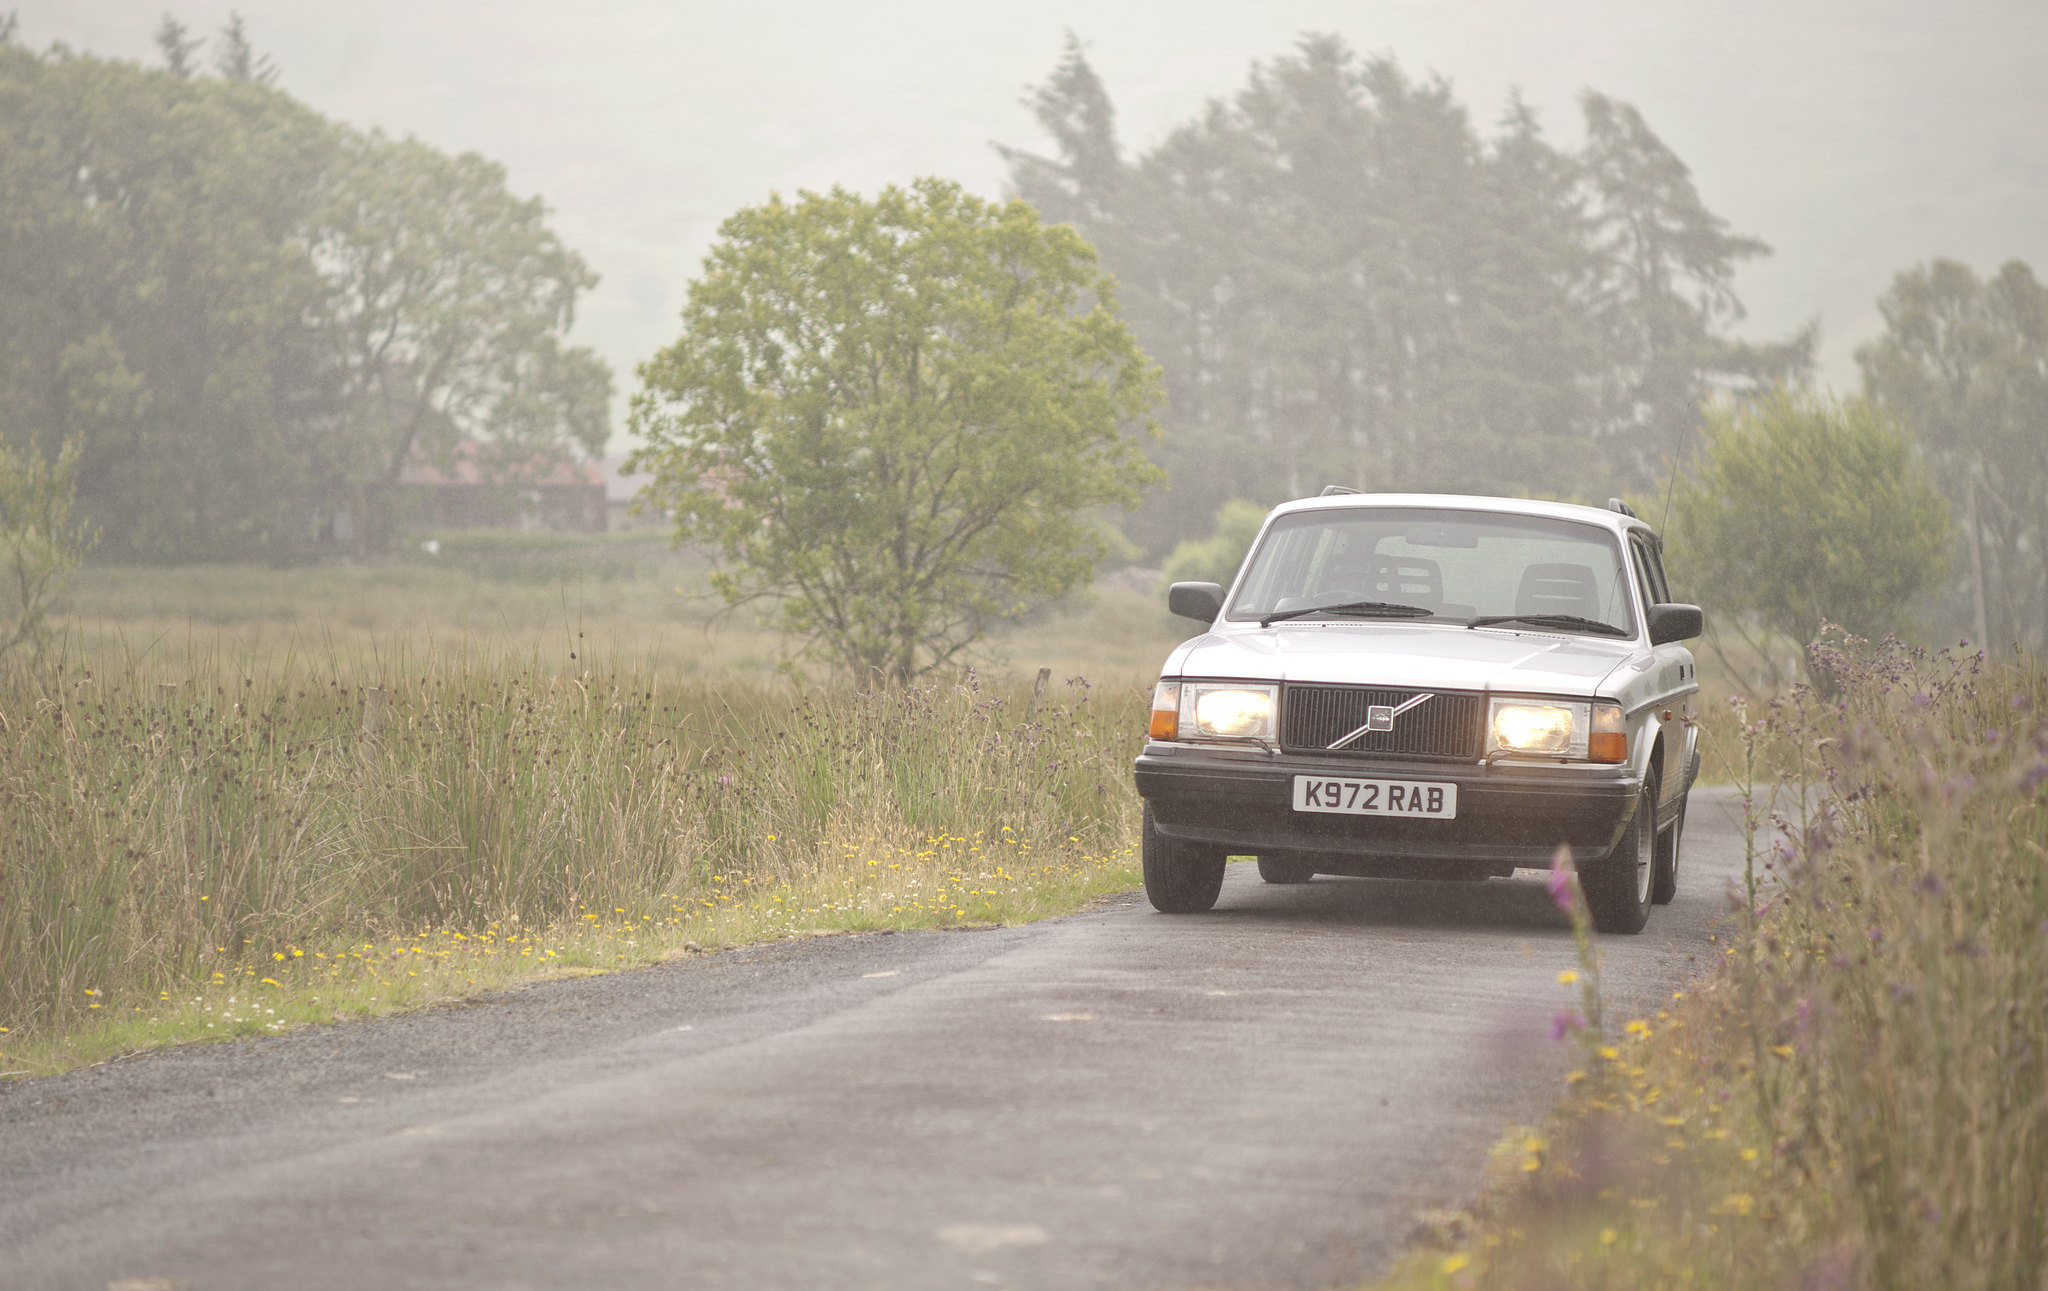 Volvo 240 Torslanda A Continuation Of E34 Explodyness Retro Rides Flame Trap By Harry Charnock On Flickr